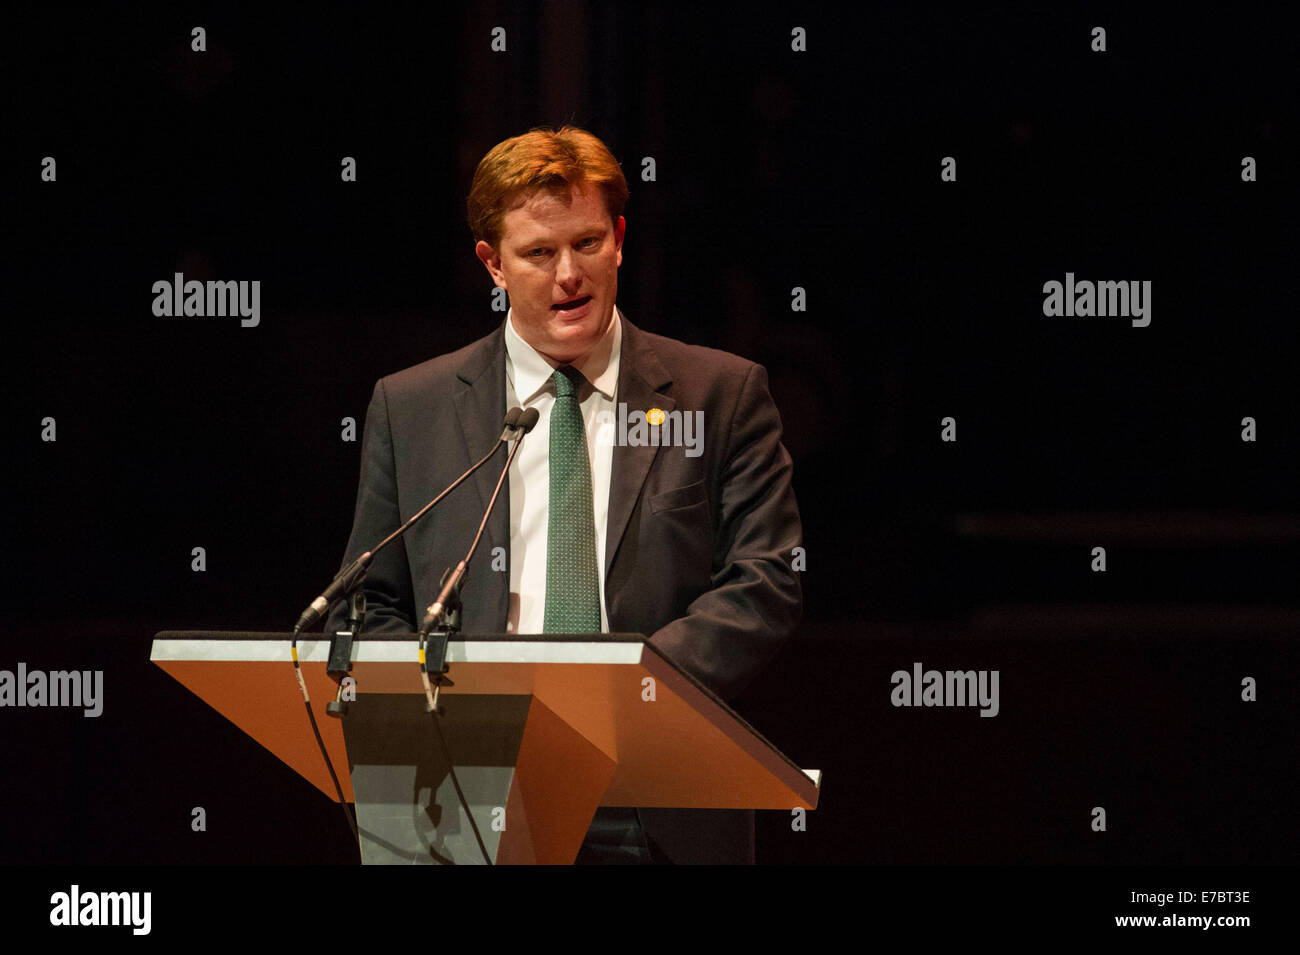 Edinburgh, Scotland, UK. 12th September, 2014. The Peoples Question Time at the Usher Hall with Danny Alexander Stock Photo